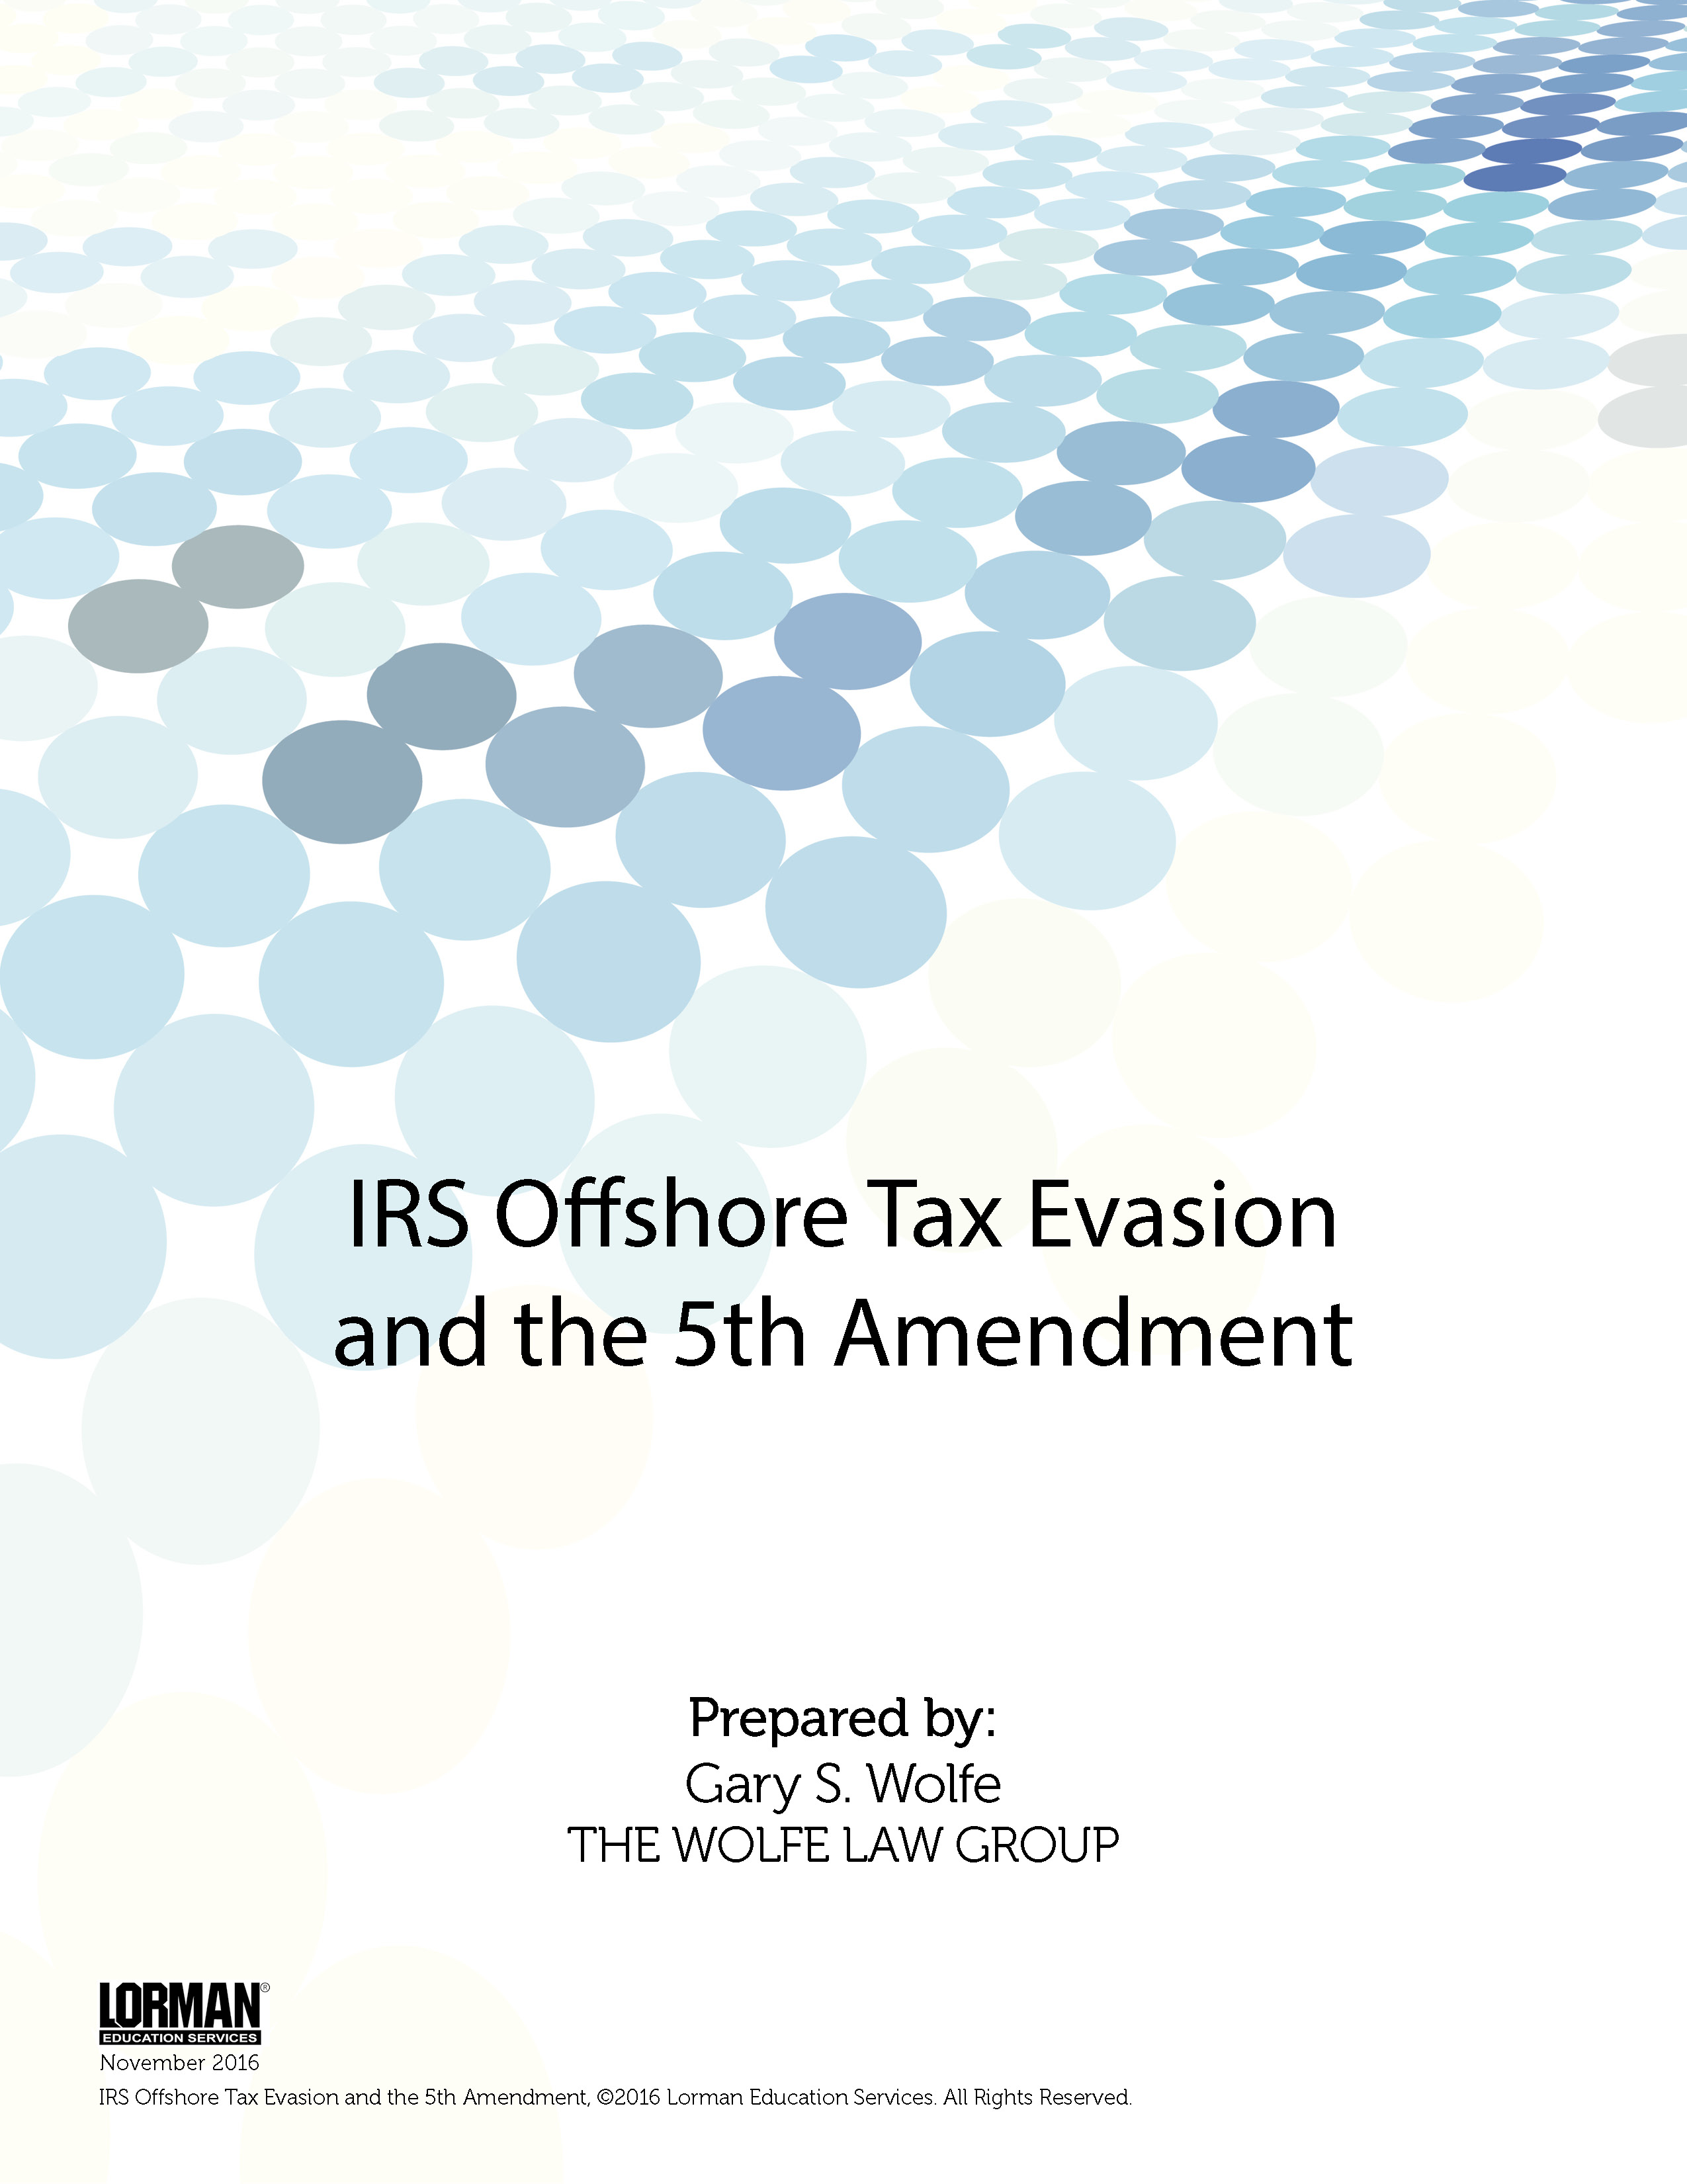 IRS Offshore Tax Evasion and the 5th Amendment